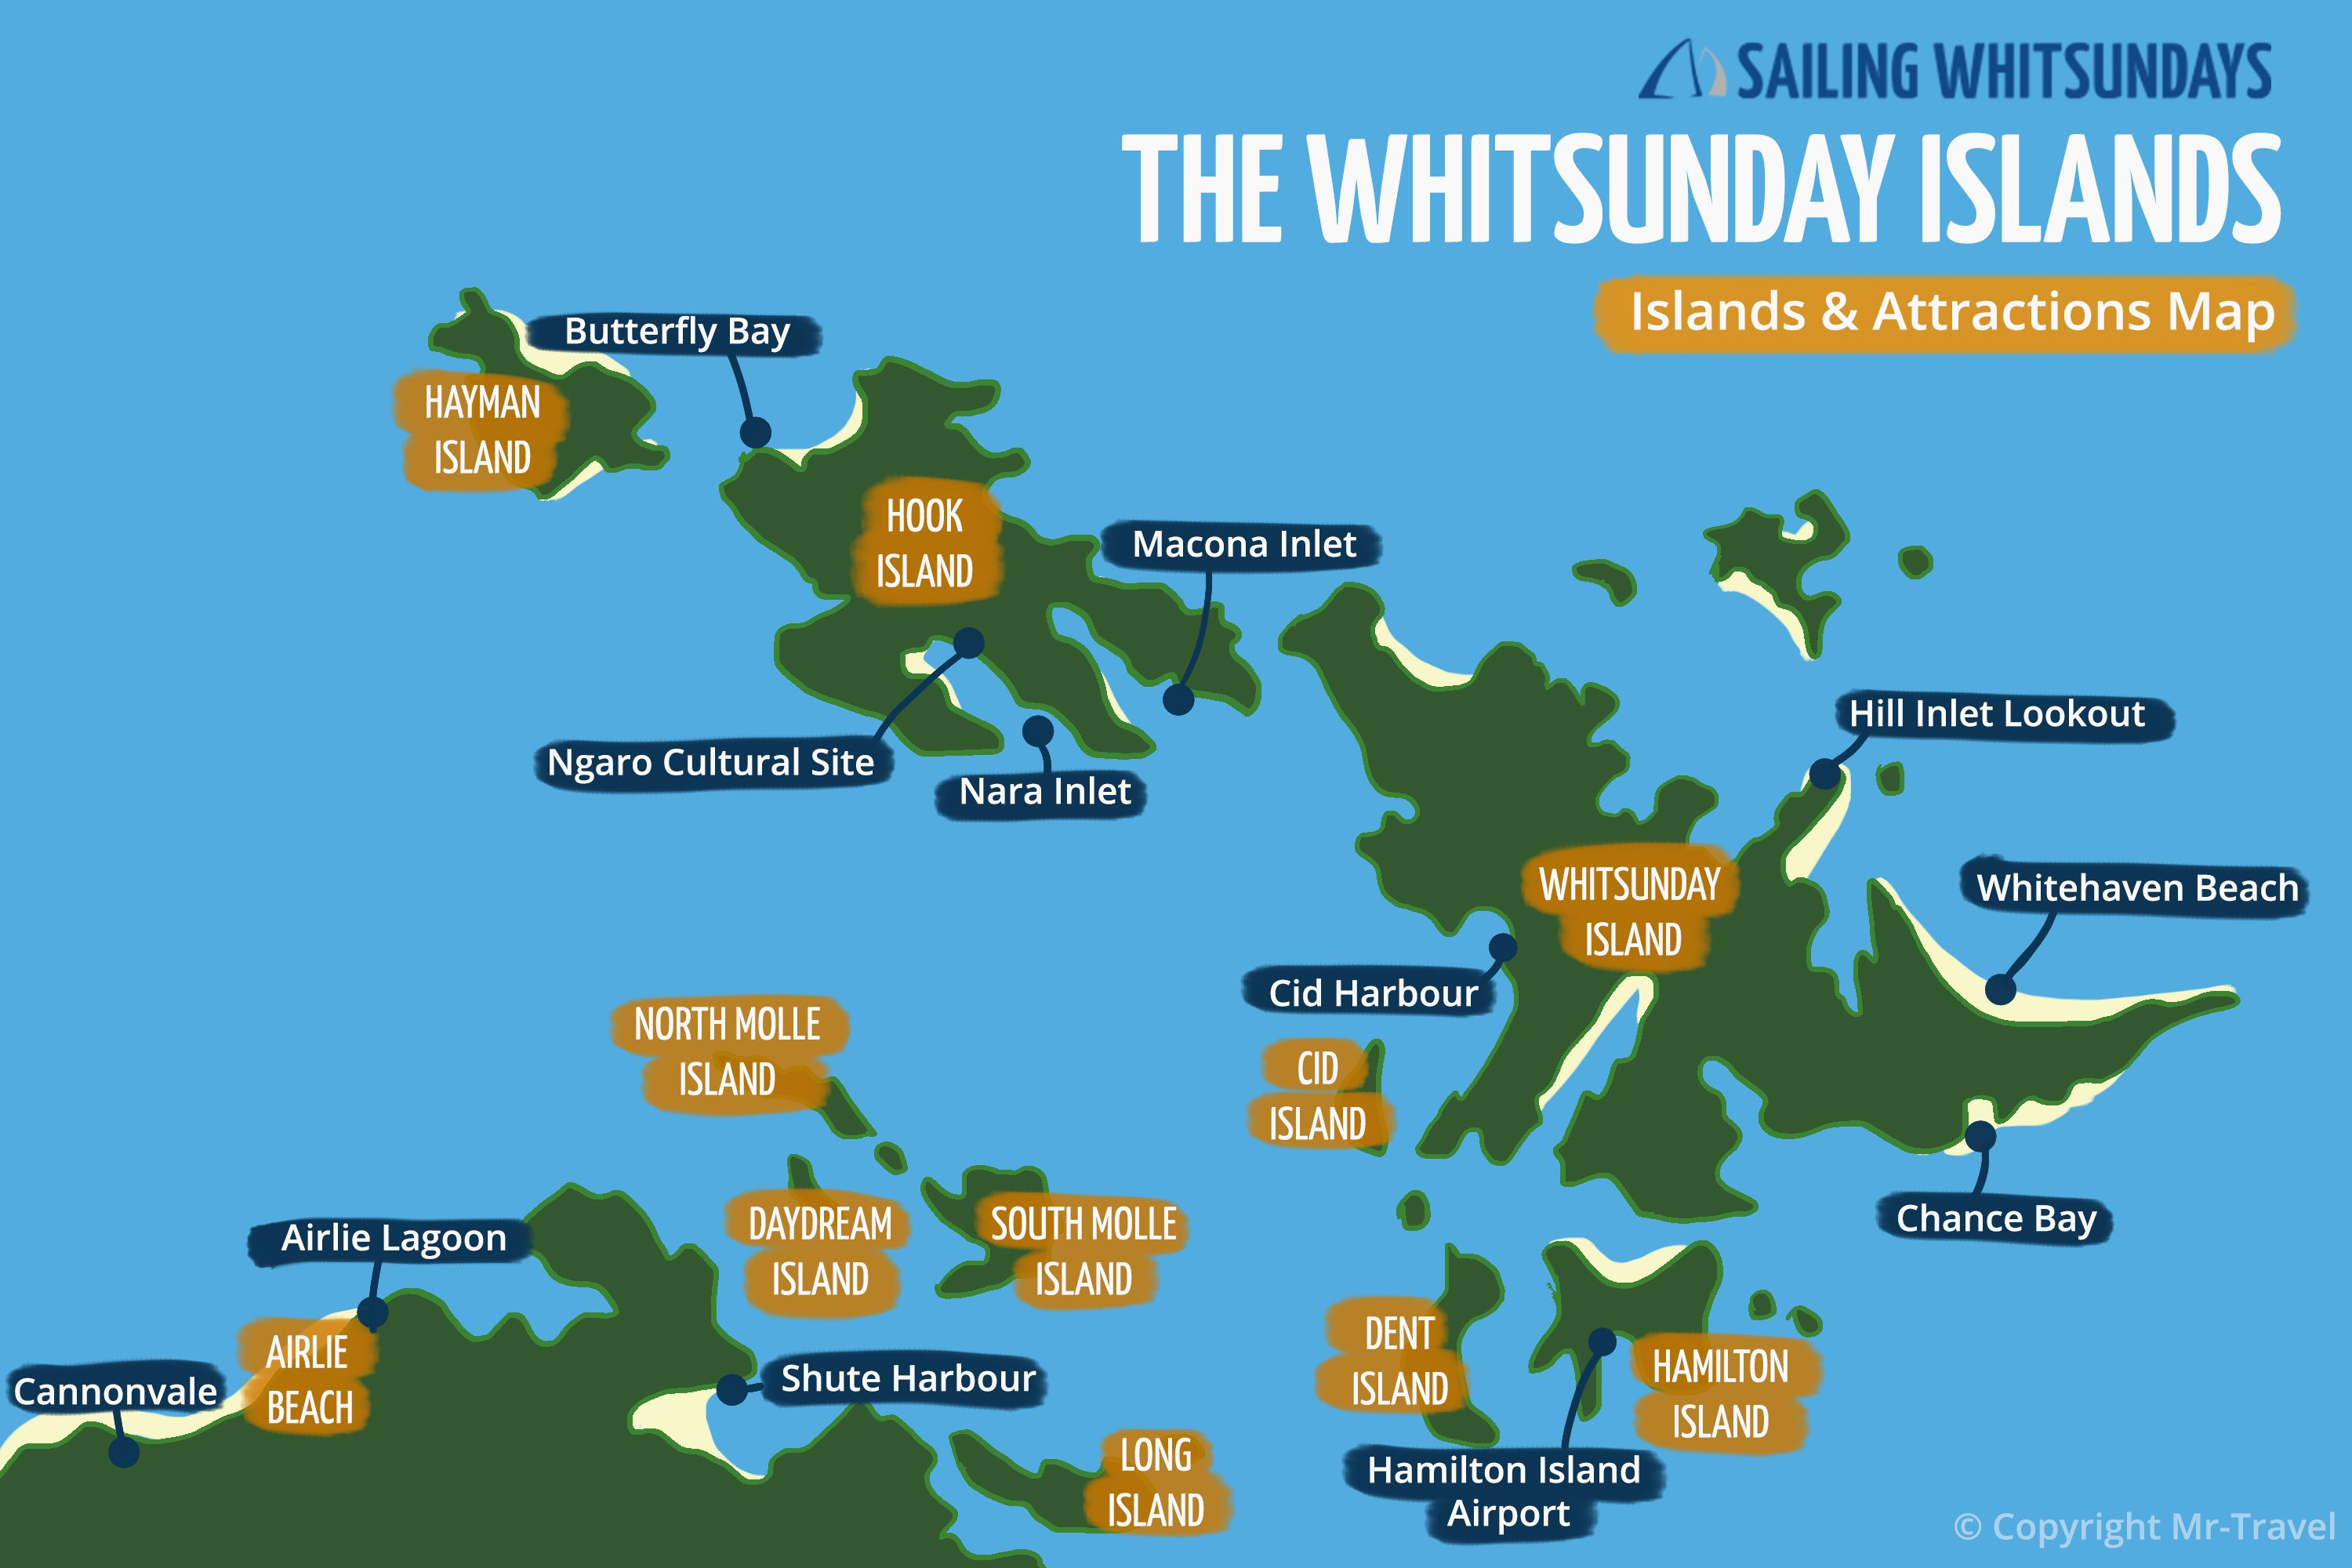 The Whitsunday Islands Map with attractions by Sailing Whitsundays 74 Islands